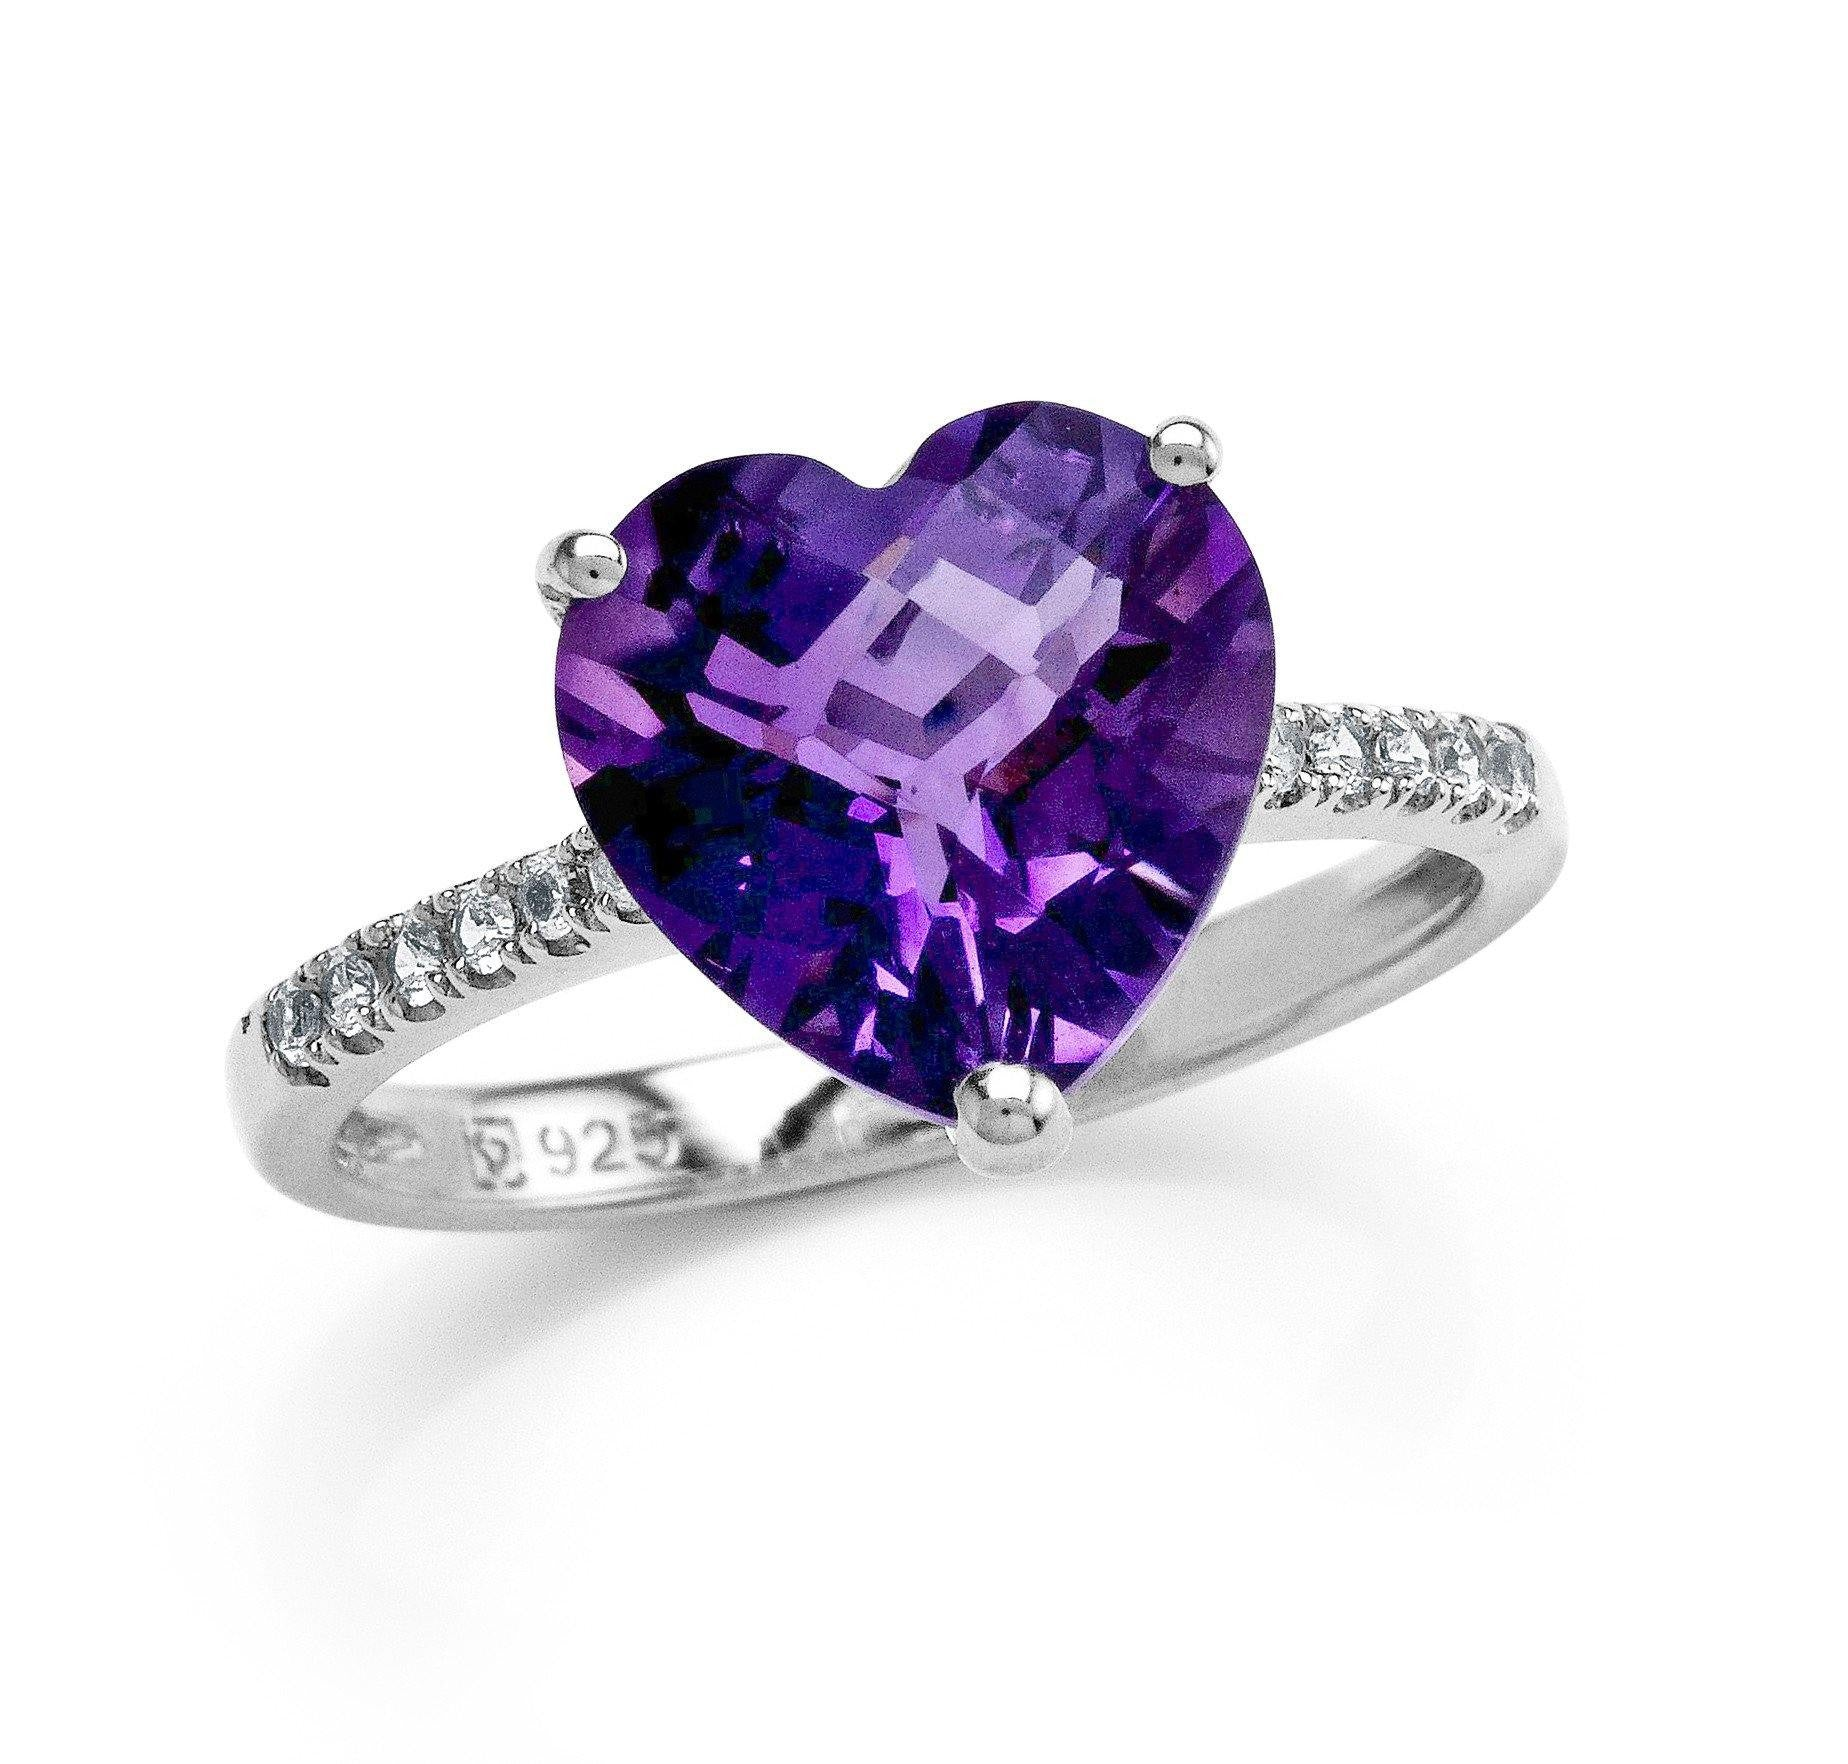 3.40 Carat Genuine Checkerboard Heart Amethyst & Created White Sapphire Ring in Sterling Silver